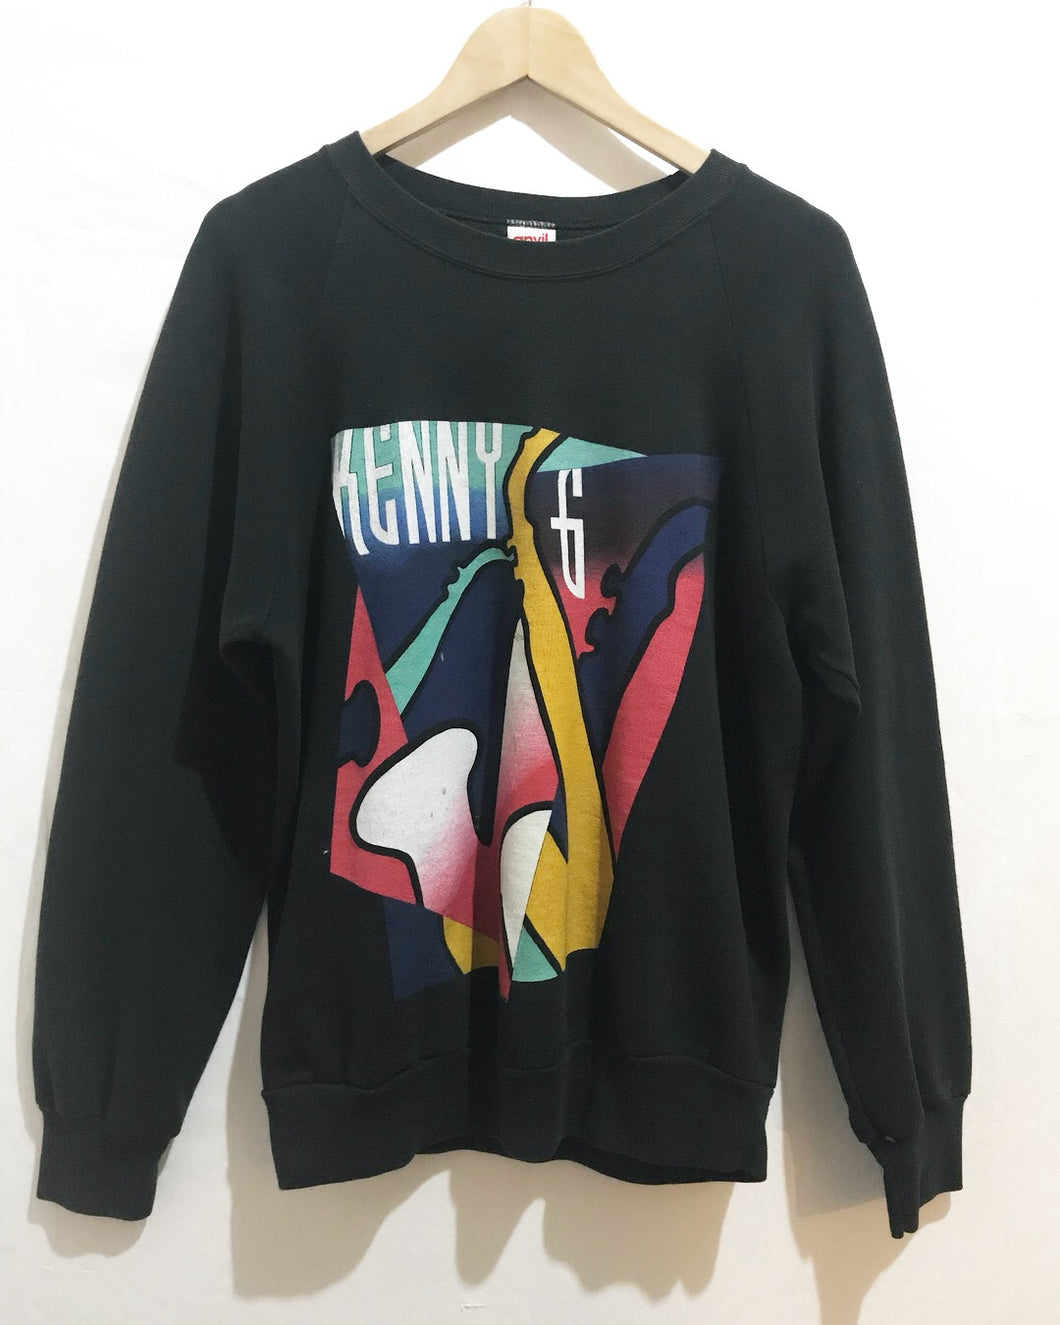 Vintage Kenny G Tour Sweatshirt in Black (©1990)